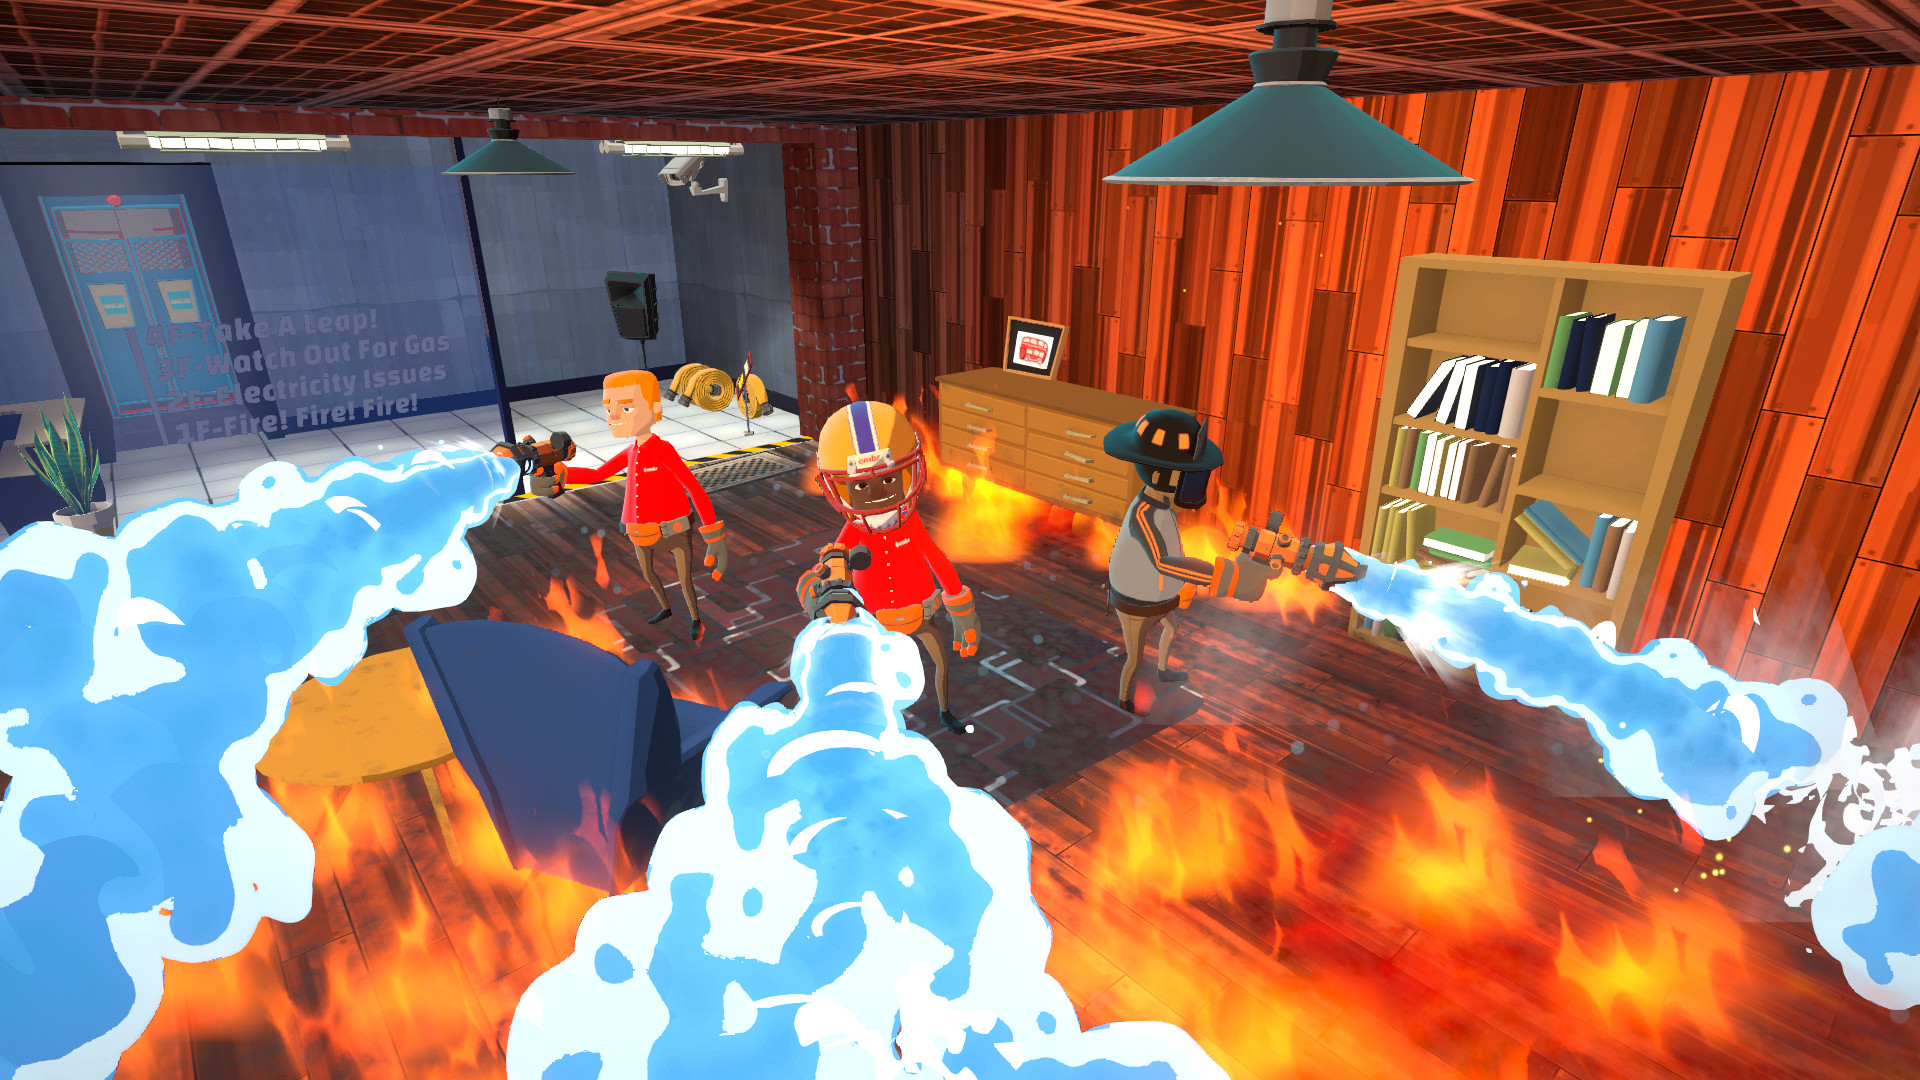 Embr is a couch co-op game about firefighting in the gig economy